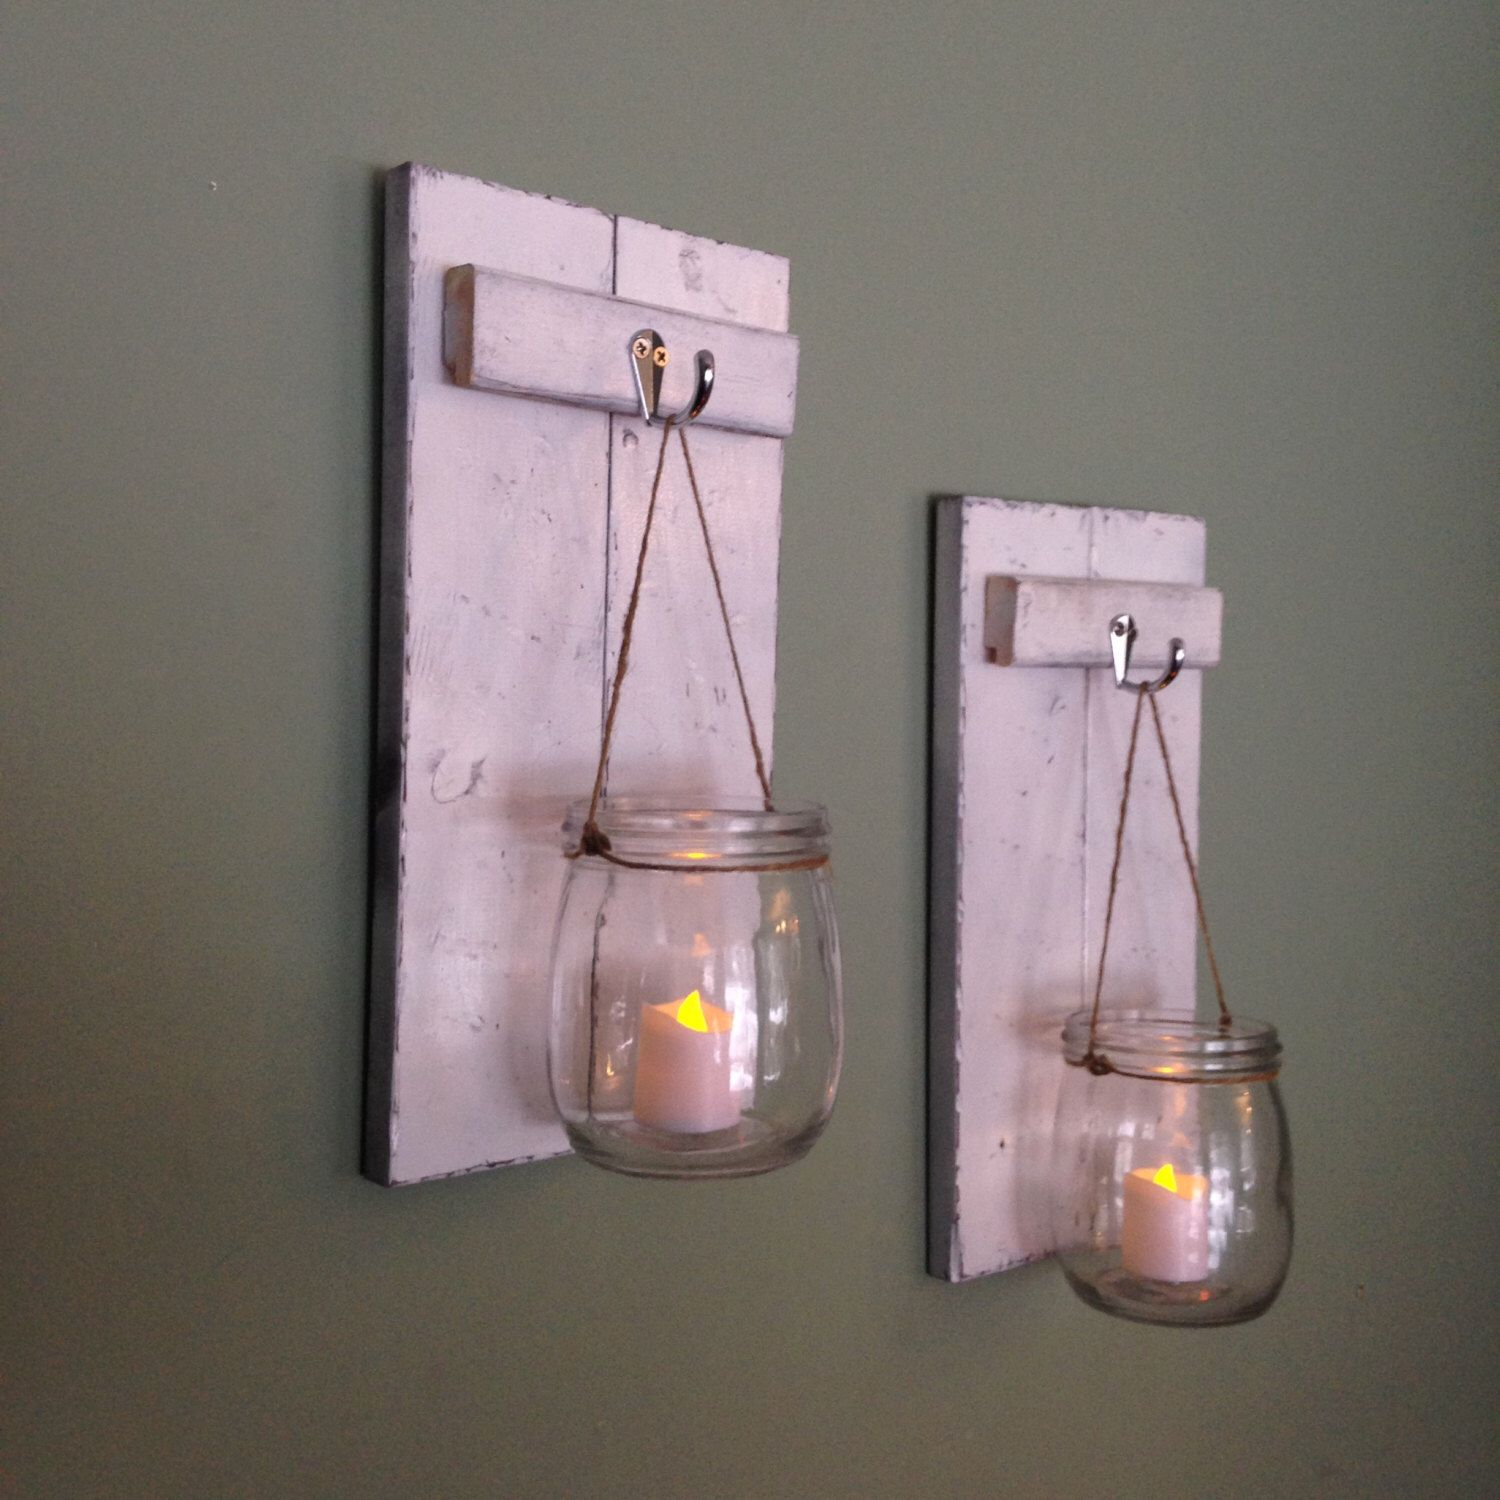 Wooden candle holder mason jar wall sconce rustic wall decor wooden candle holder mason jar wall sconce rustic wall decor cabin decor amipublicfo Image collections